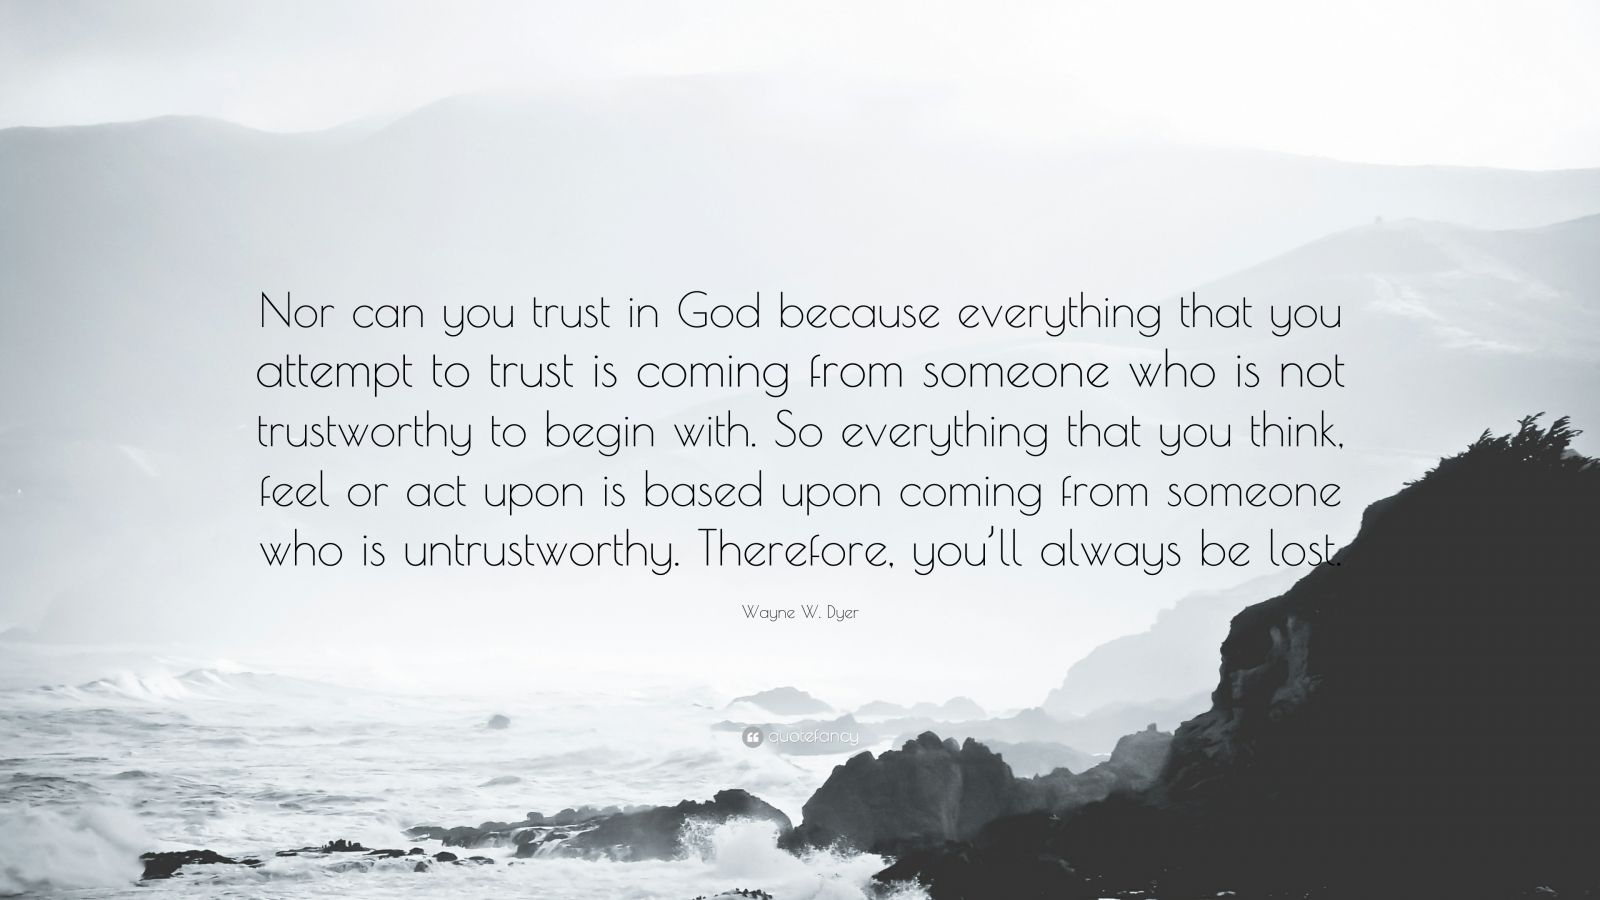 """Wayne W. Dyer Quote: """"Nor can you trust in God because everything that you attempt to trust is coming from someone who is not trustworthy to begin with. So everything that you think, feel or act upon is based upon coming from someone who is untrustworthy. Therefore, you'll always be lost."""""""